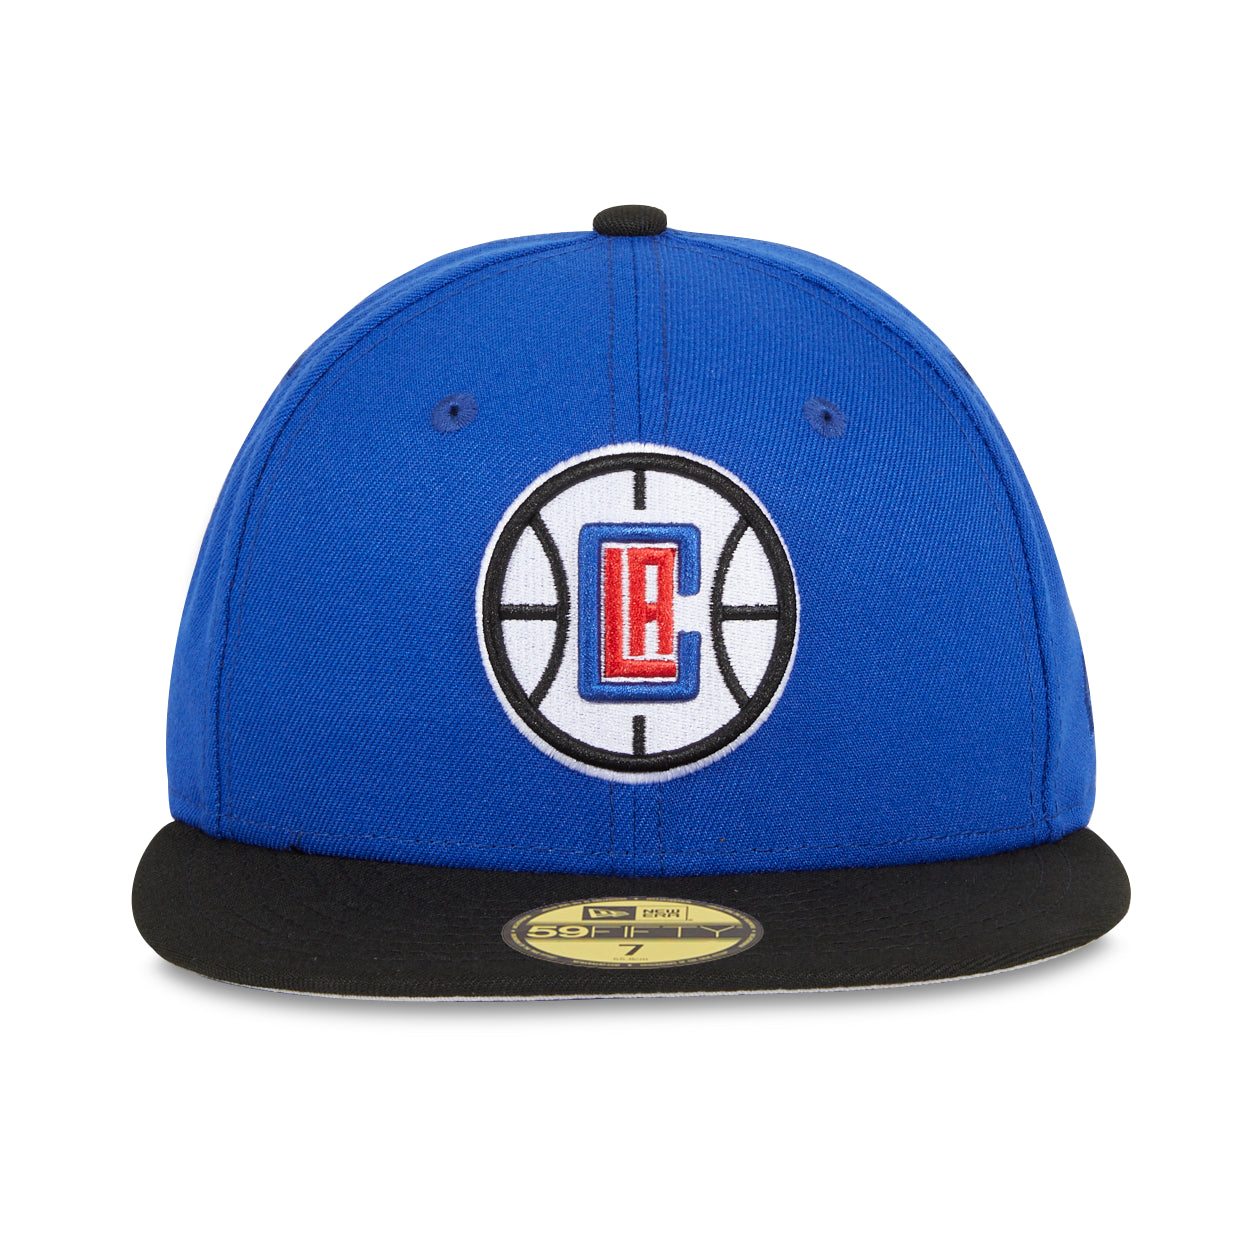 New Era 59Fifty Los Angeles Clippers Alternate Hat - 2T Royal, Black